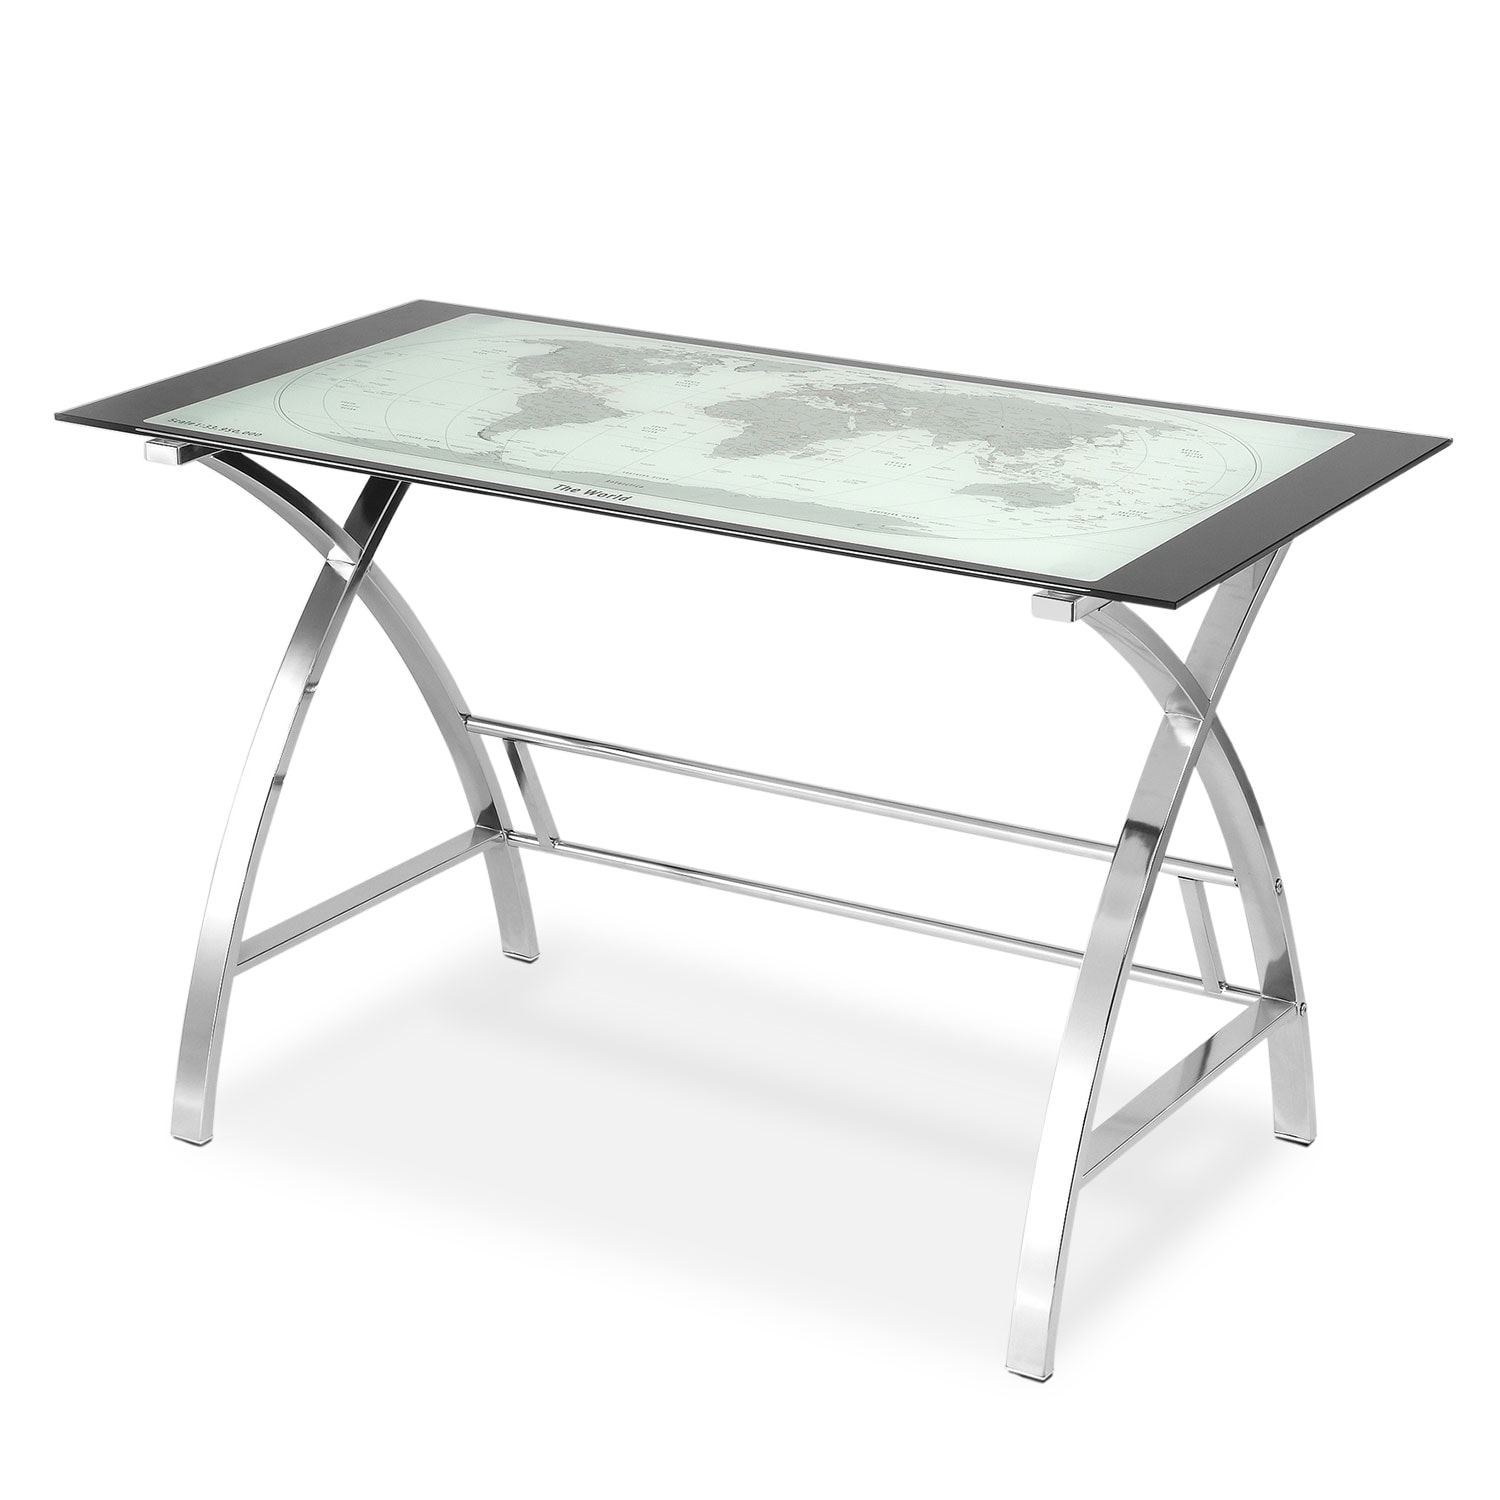 Home Office Furniture - Aether Desk - Chrome